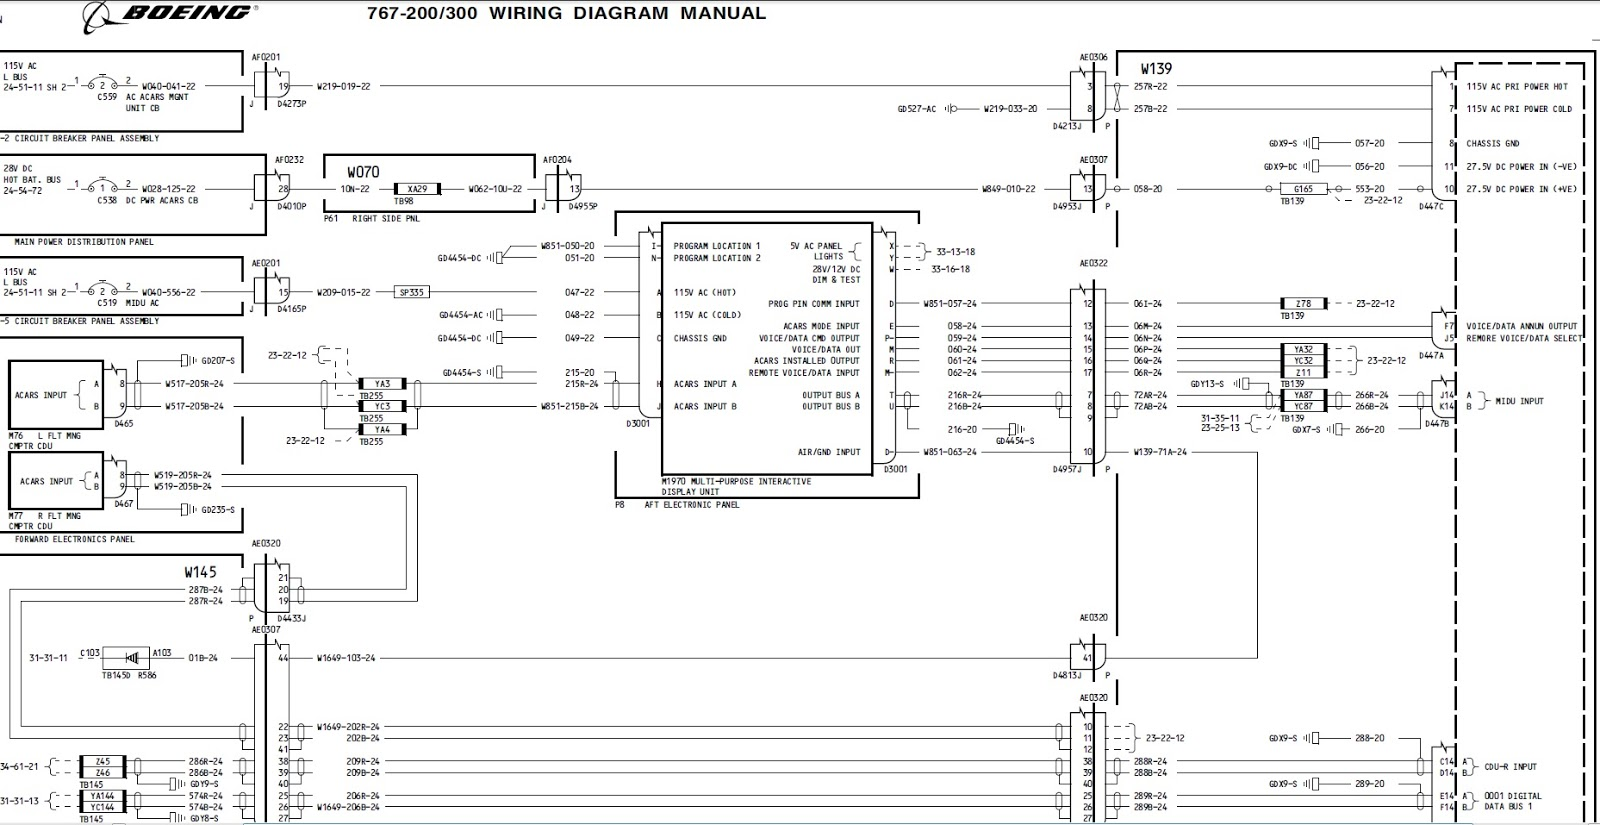 boeing wiring diagrams reading boeing wiring diagrams boeing 767 simulator project: avionics bending: acars ... #1